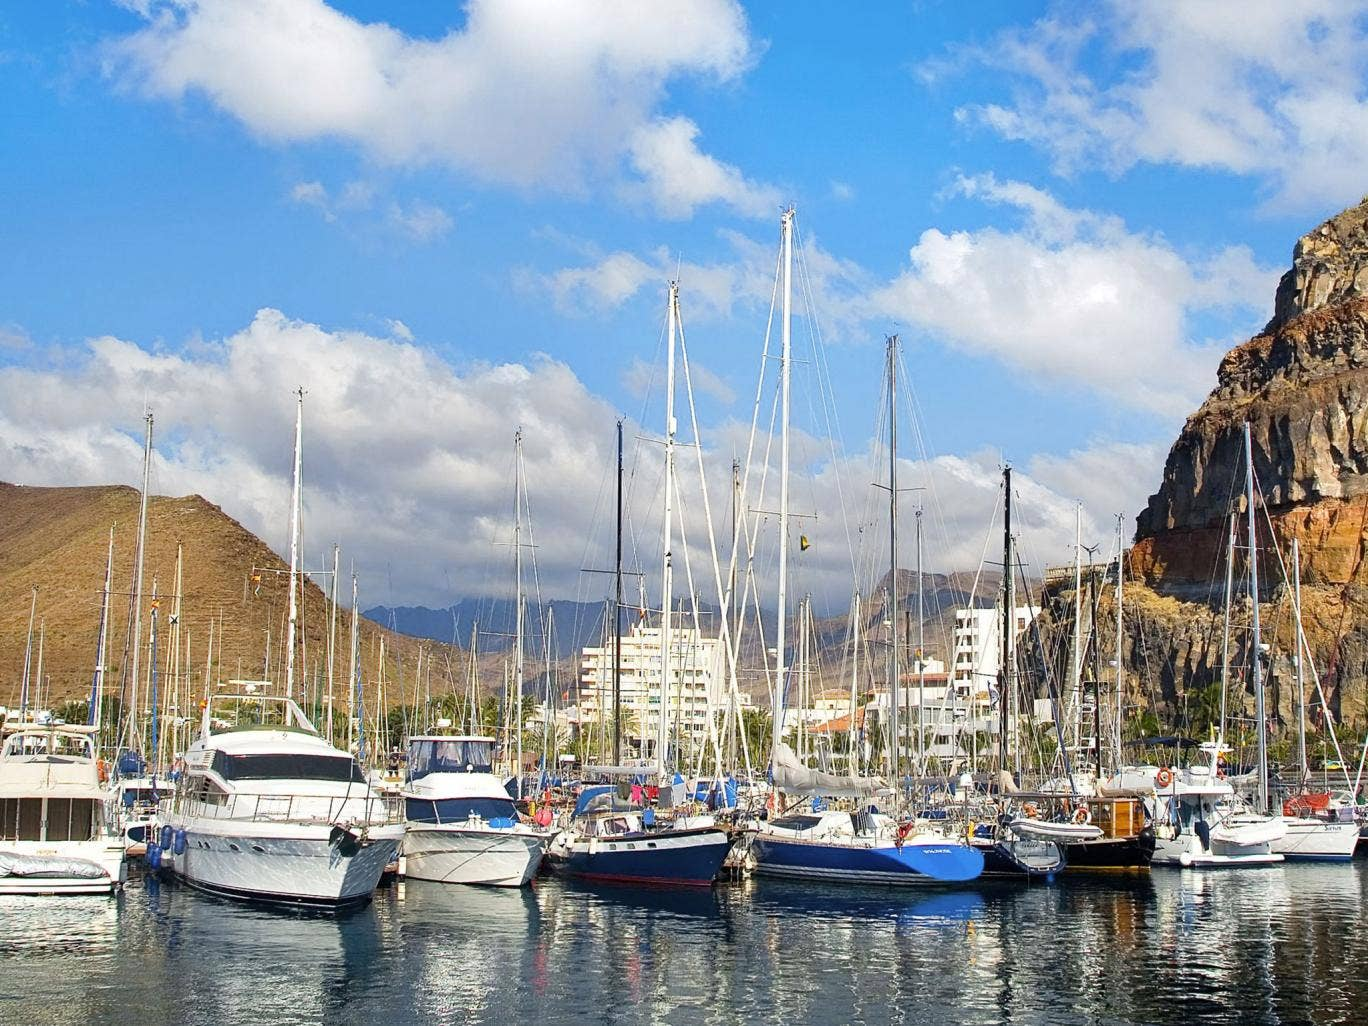 Ship shape: boats moored off La Gomera where Ron Howard's latest film, 'In the Heart of the Sea', was filmed